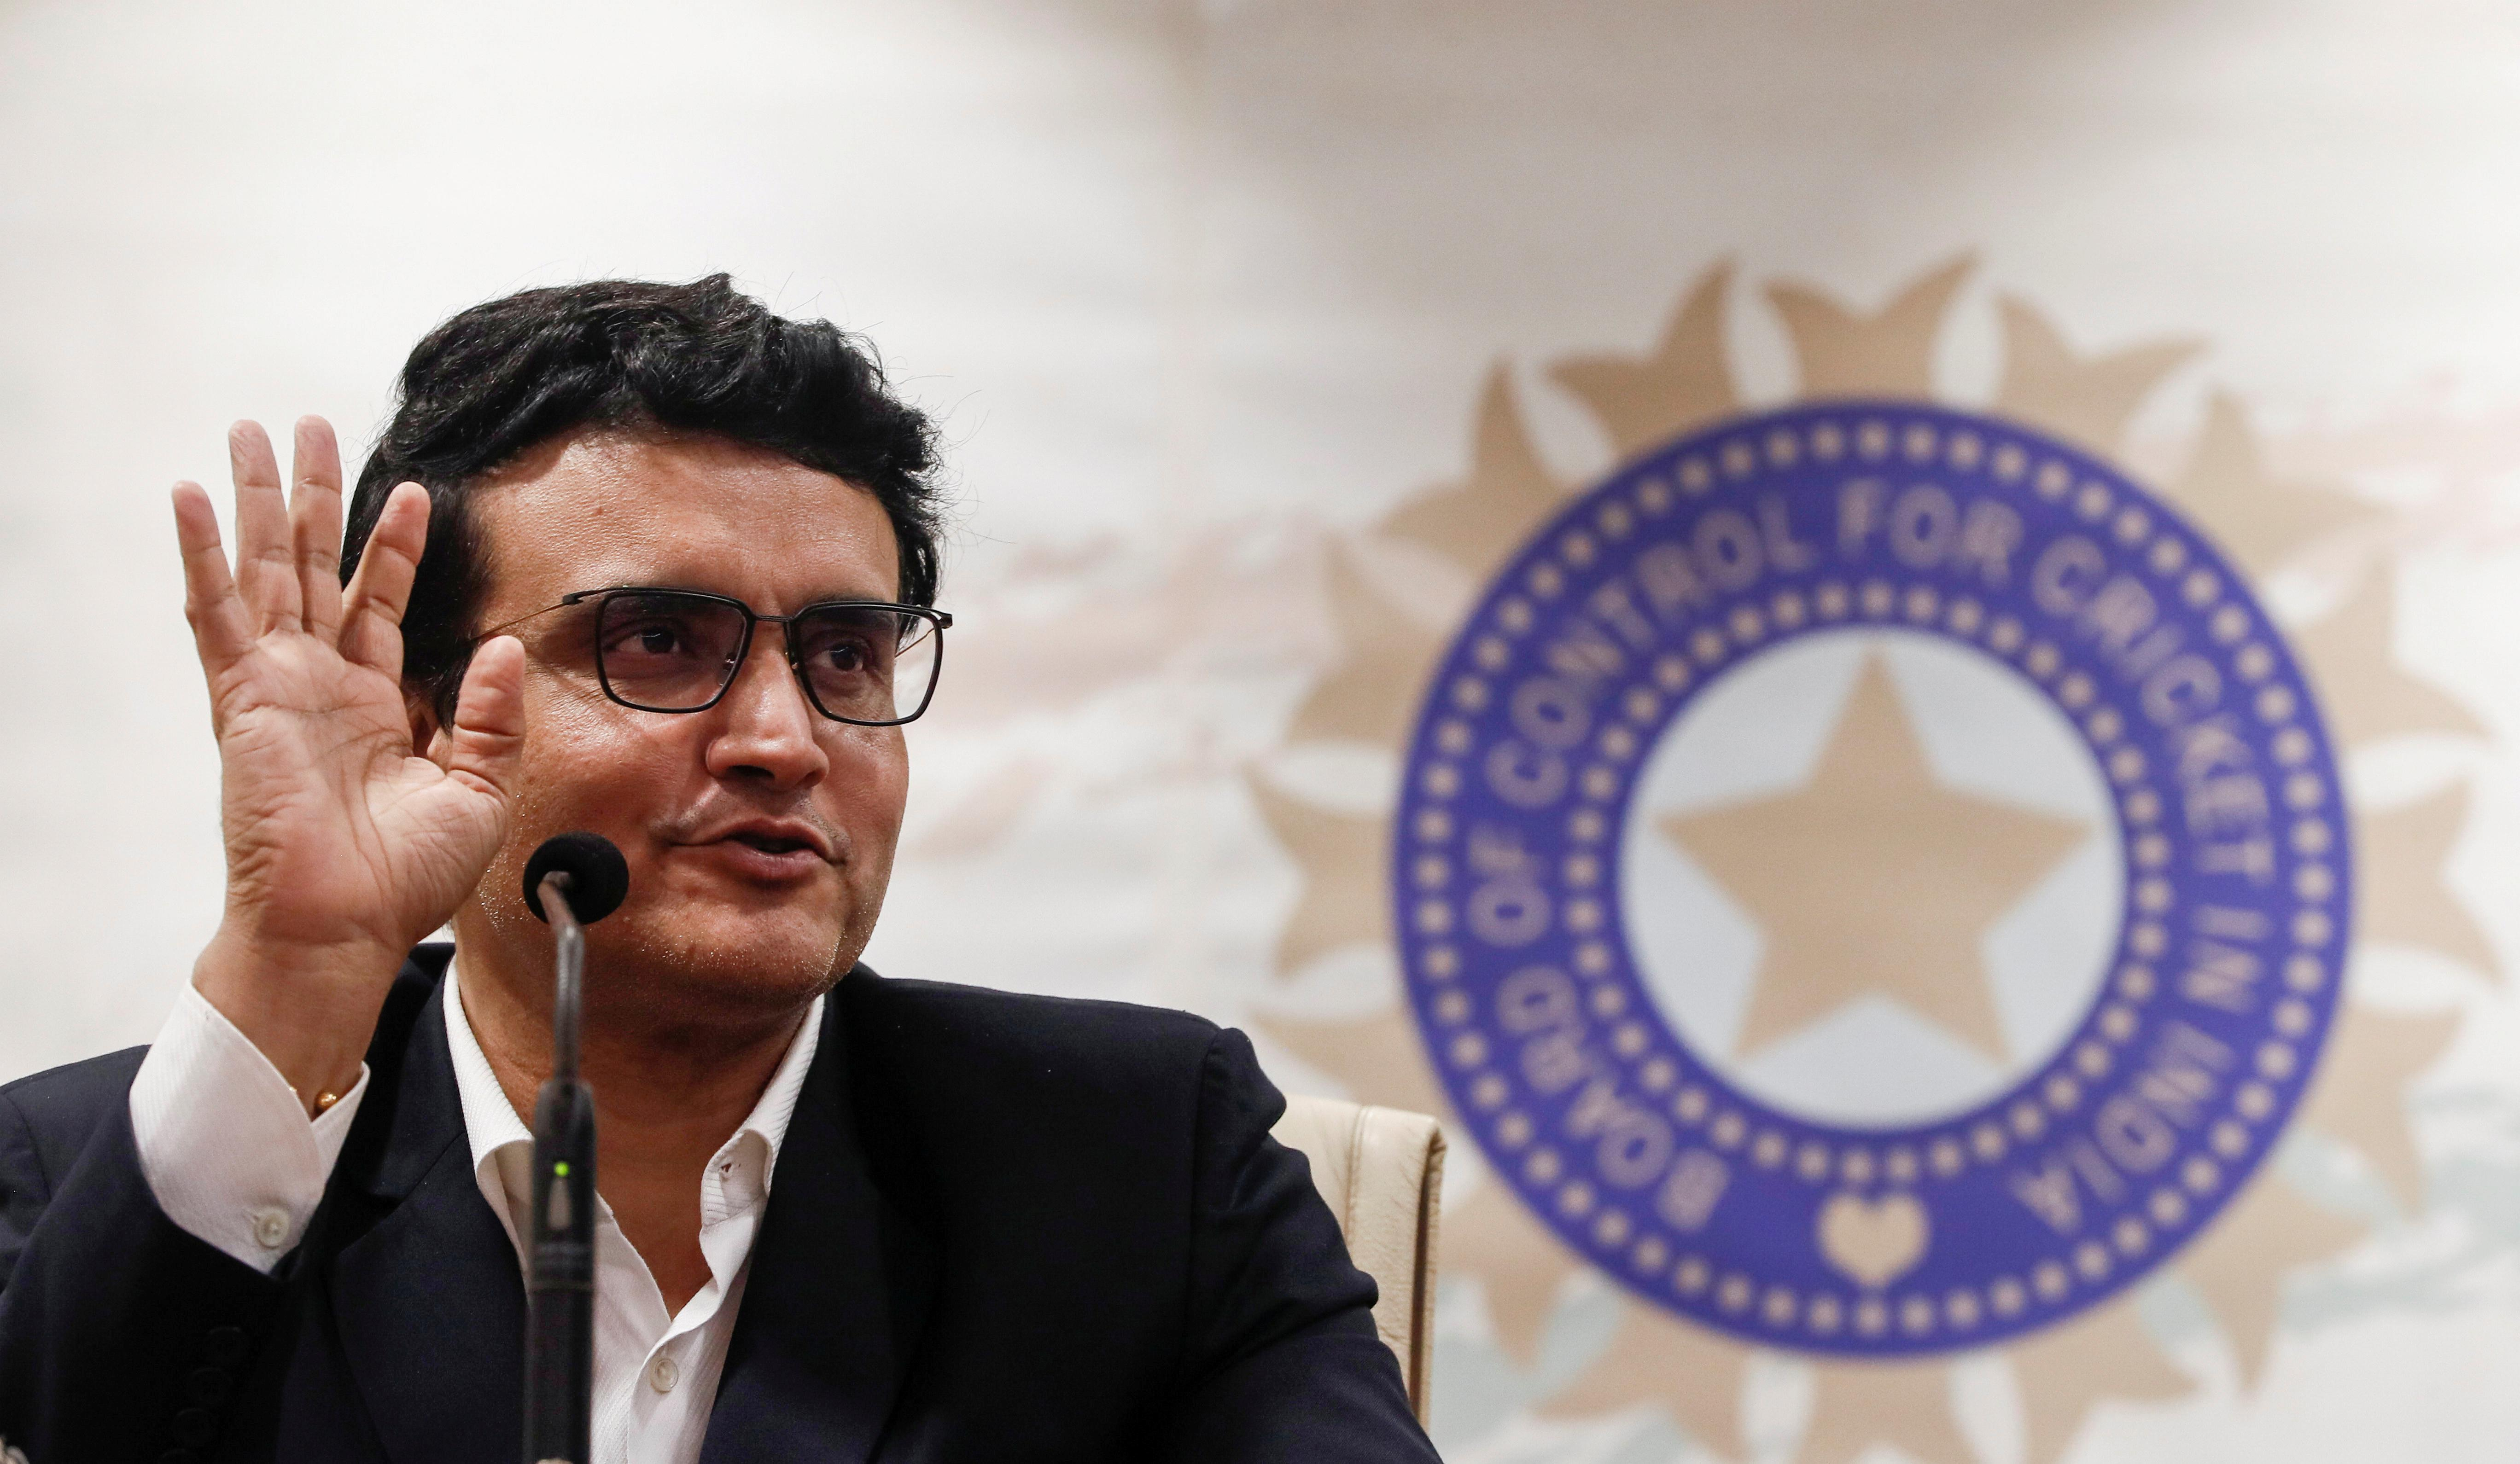 At long last, India ready to take day-night test plunge